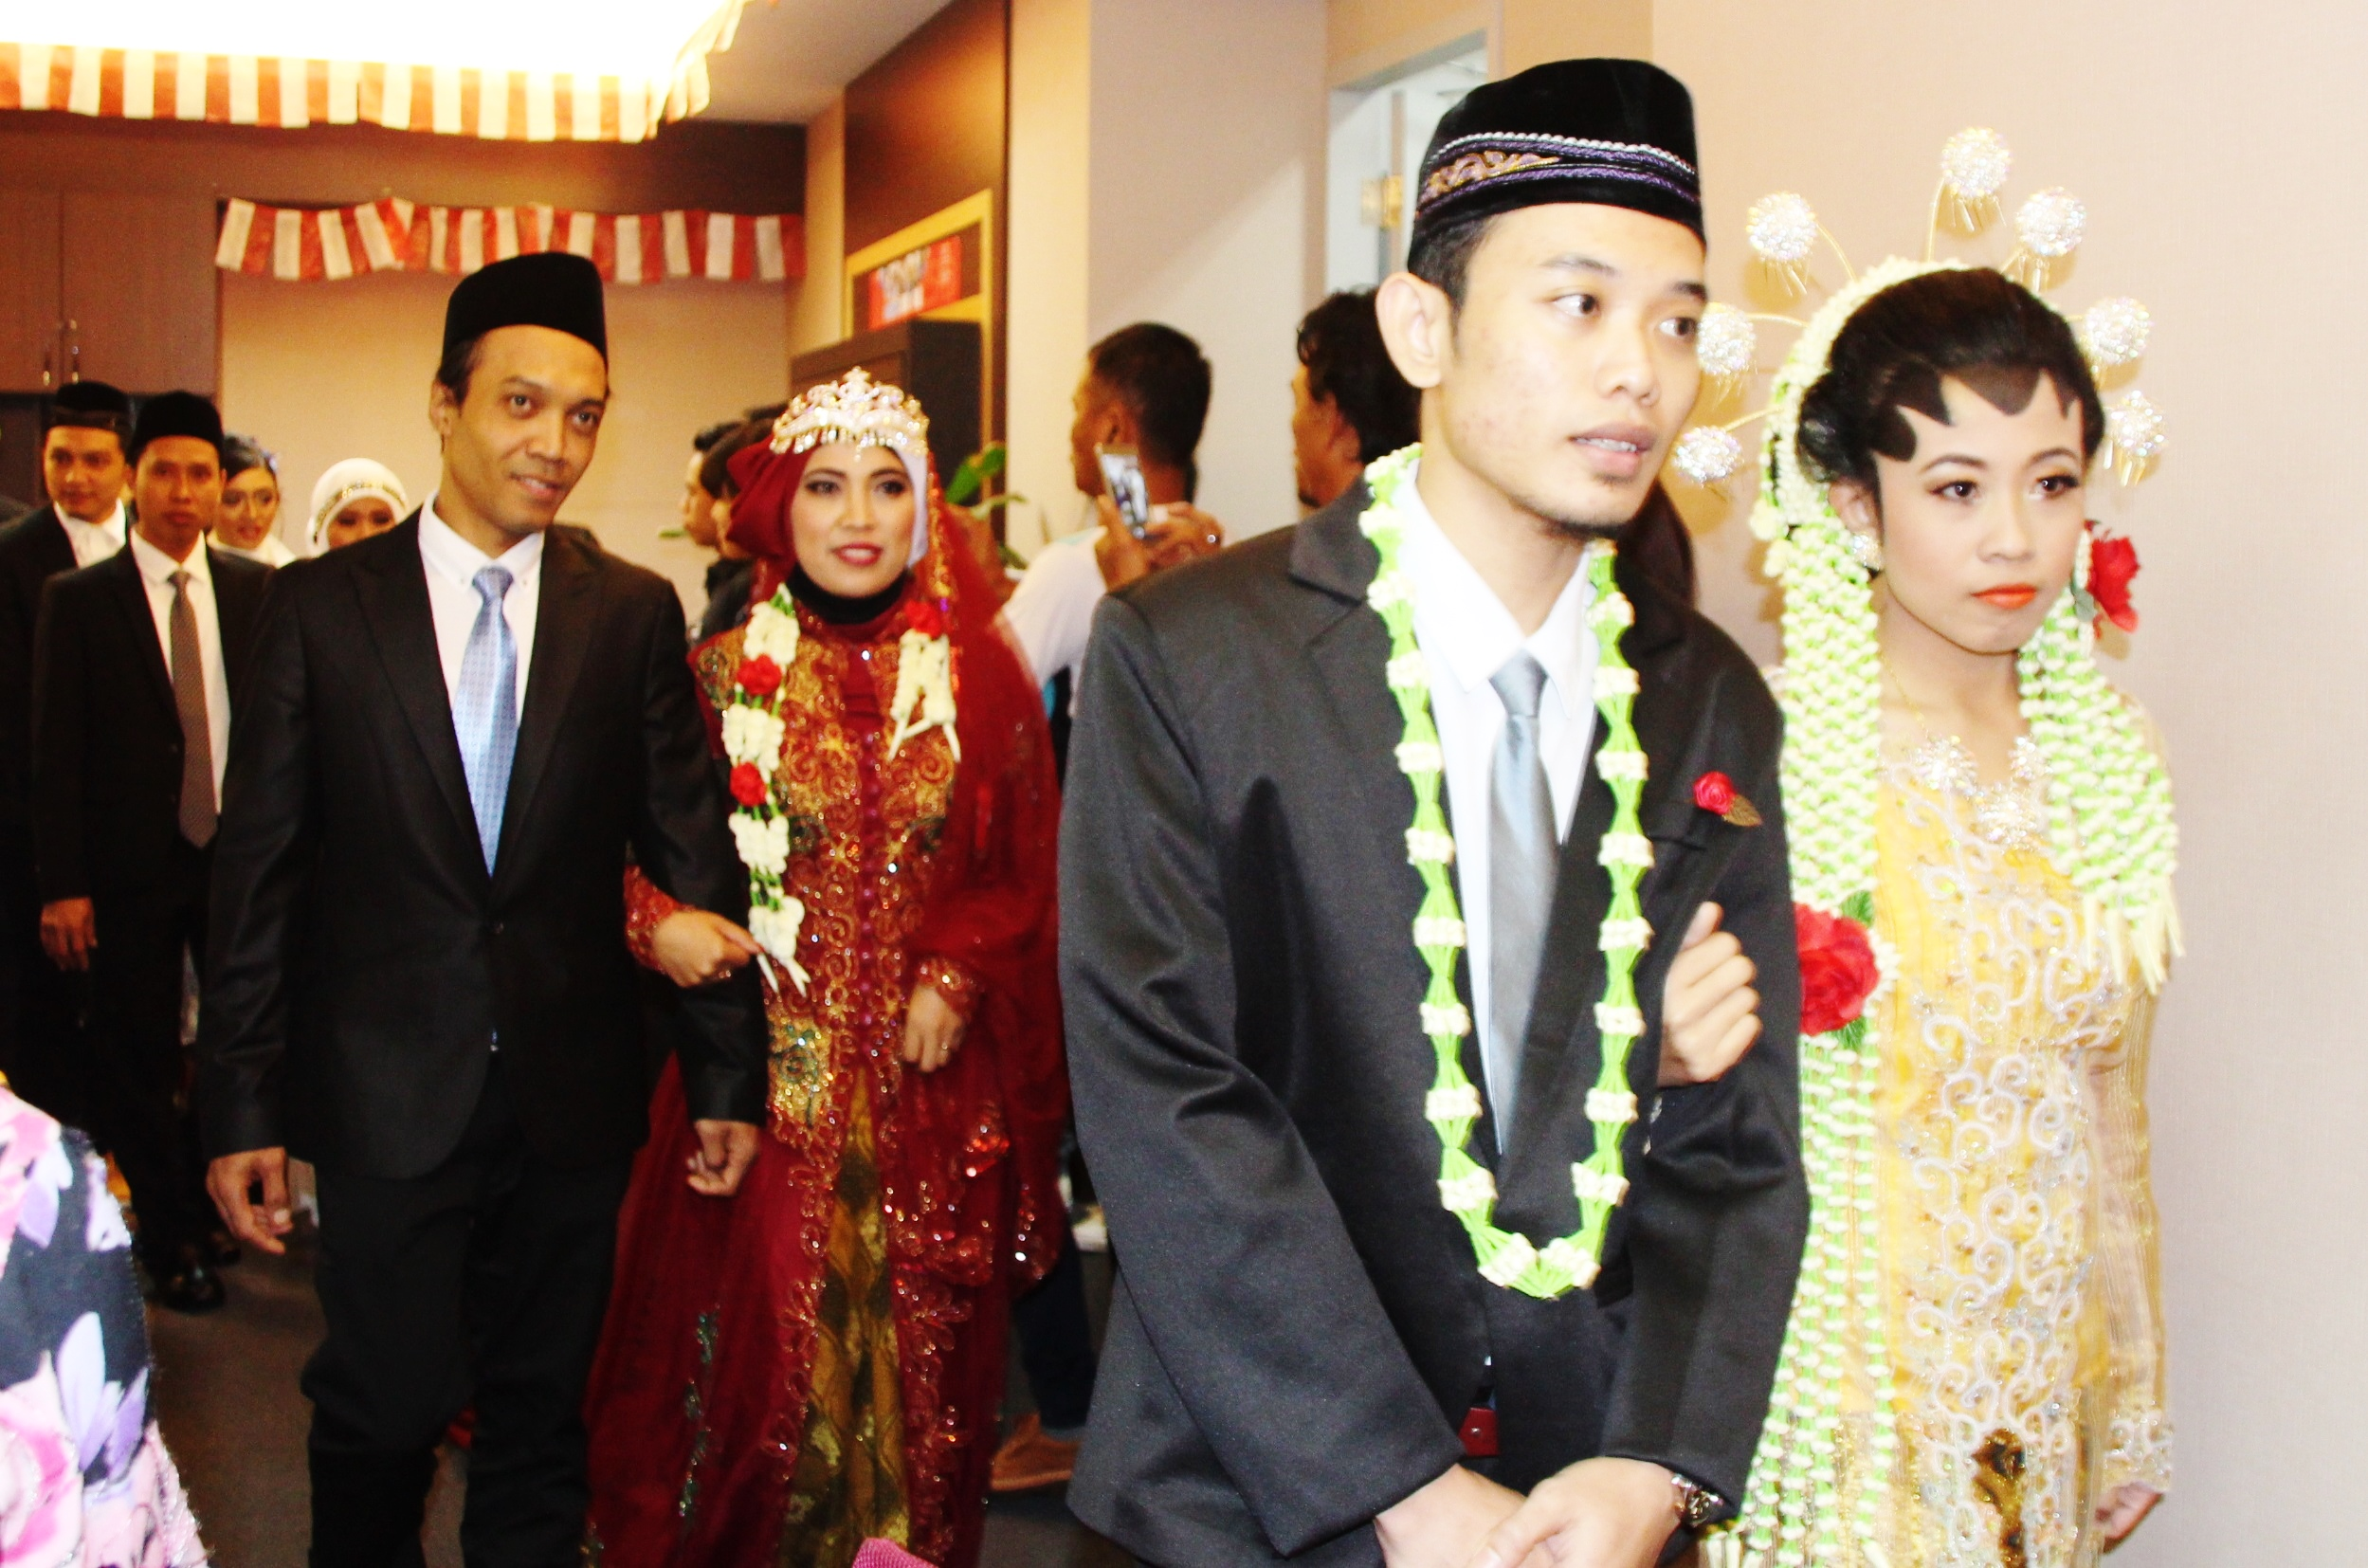 IETO hosts emotional event with mass wedding for Indonesian expats